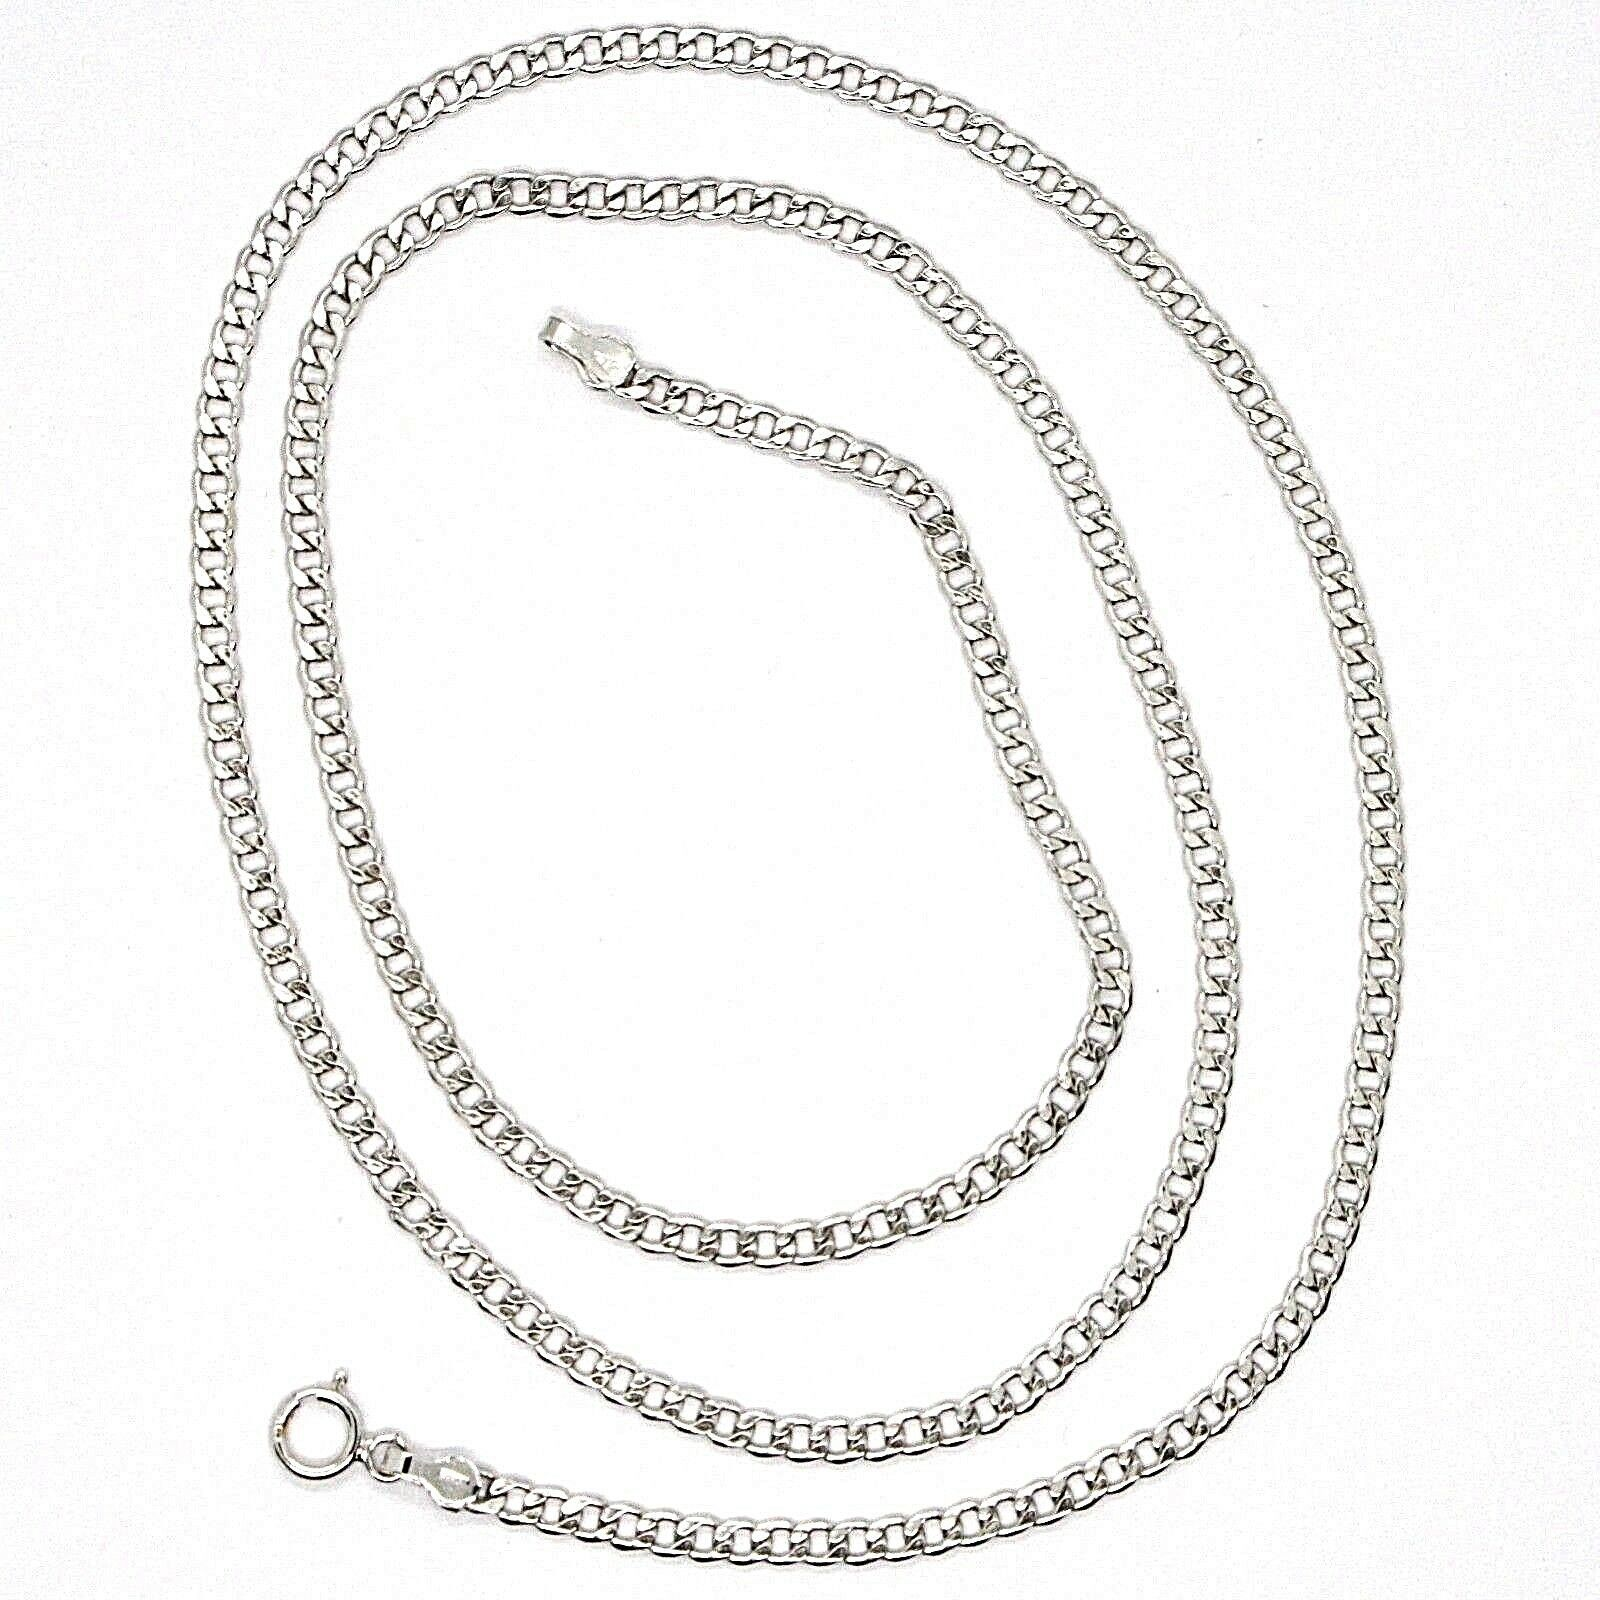 18K WHITE GOLD GOURMETTE CUBAN CURB CHAIN 2 MM, 19.7 inches, NECKLACE